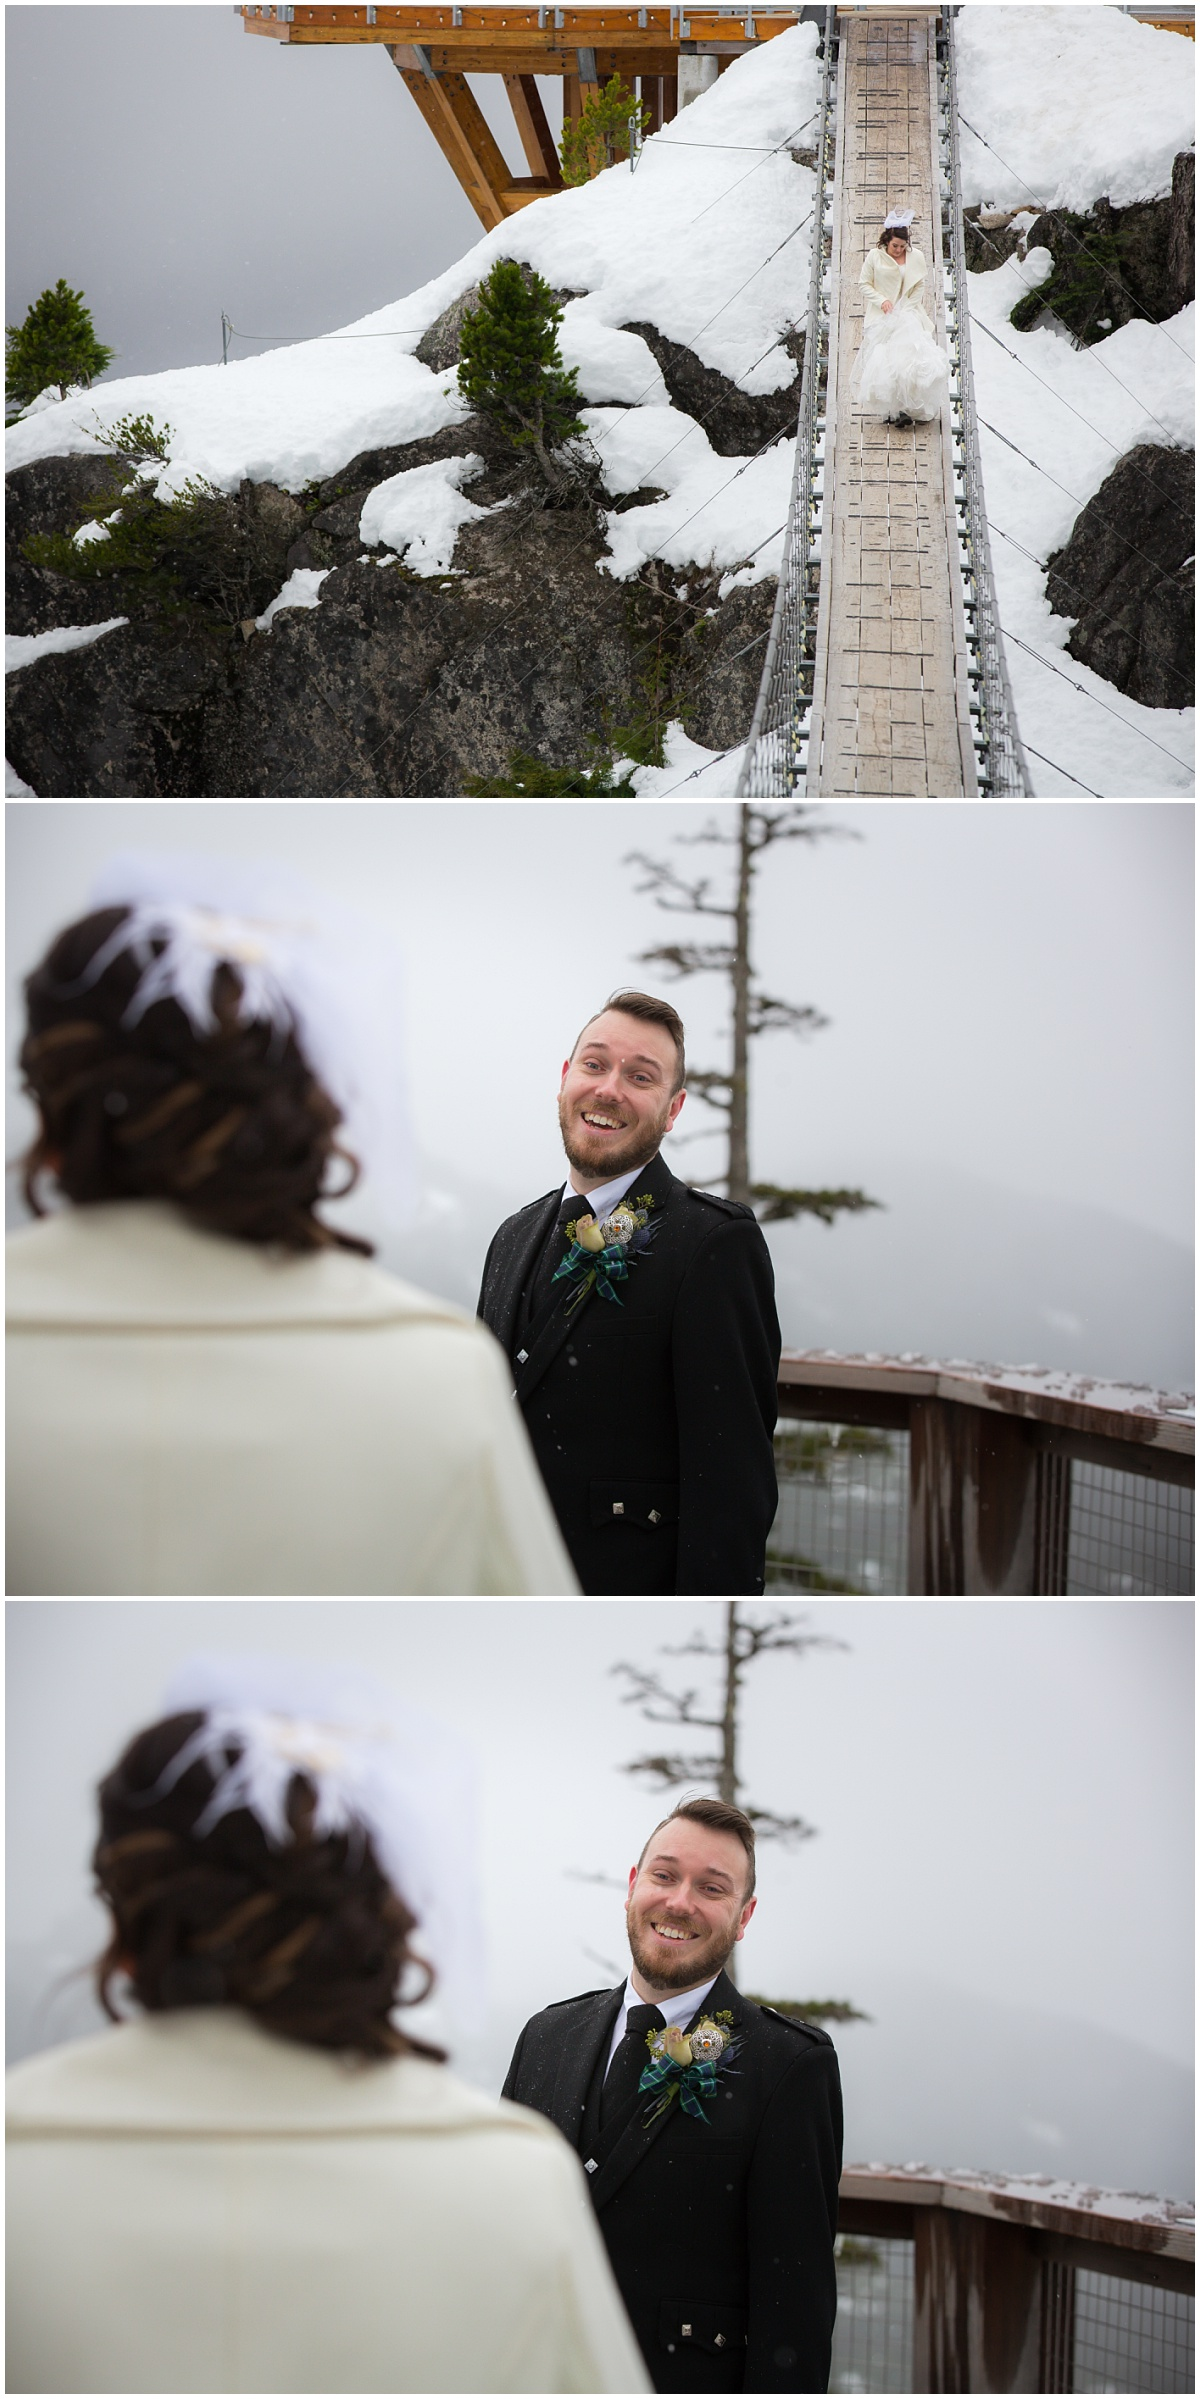 Amazing Day Photography - Squamish Wedding - Howe Sound Inn Wedding - Sea to Sky Gondola Wedding - Squamish Wedding Photographer - Winter Wedding - Snowy Wedding (7).jpg